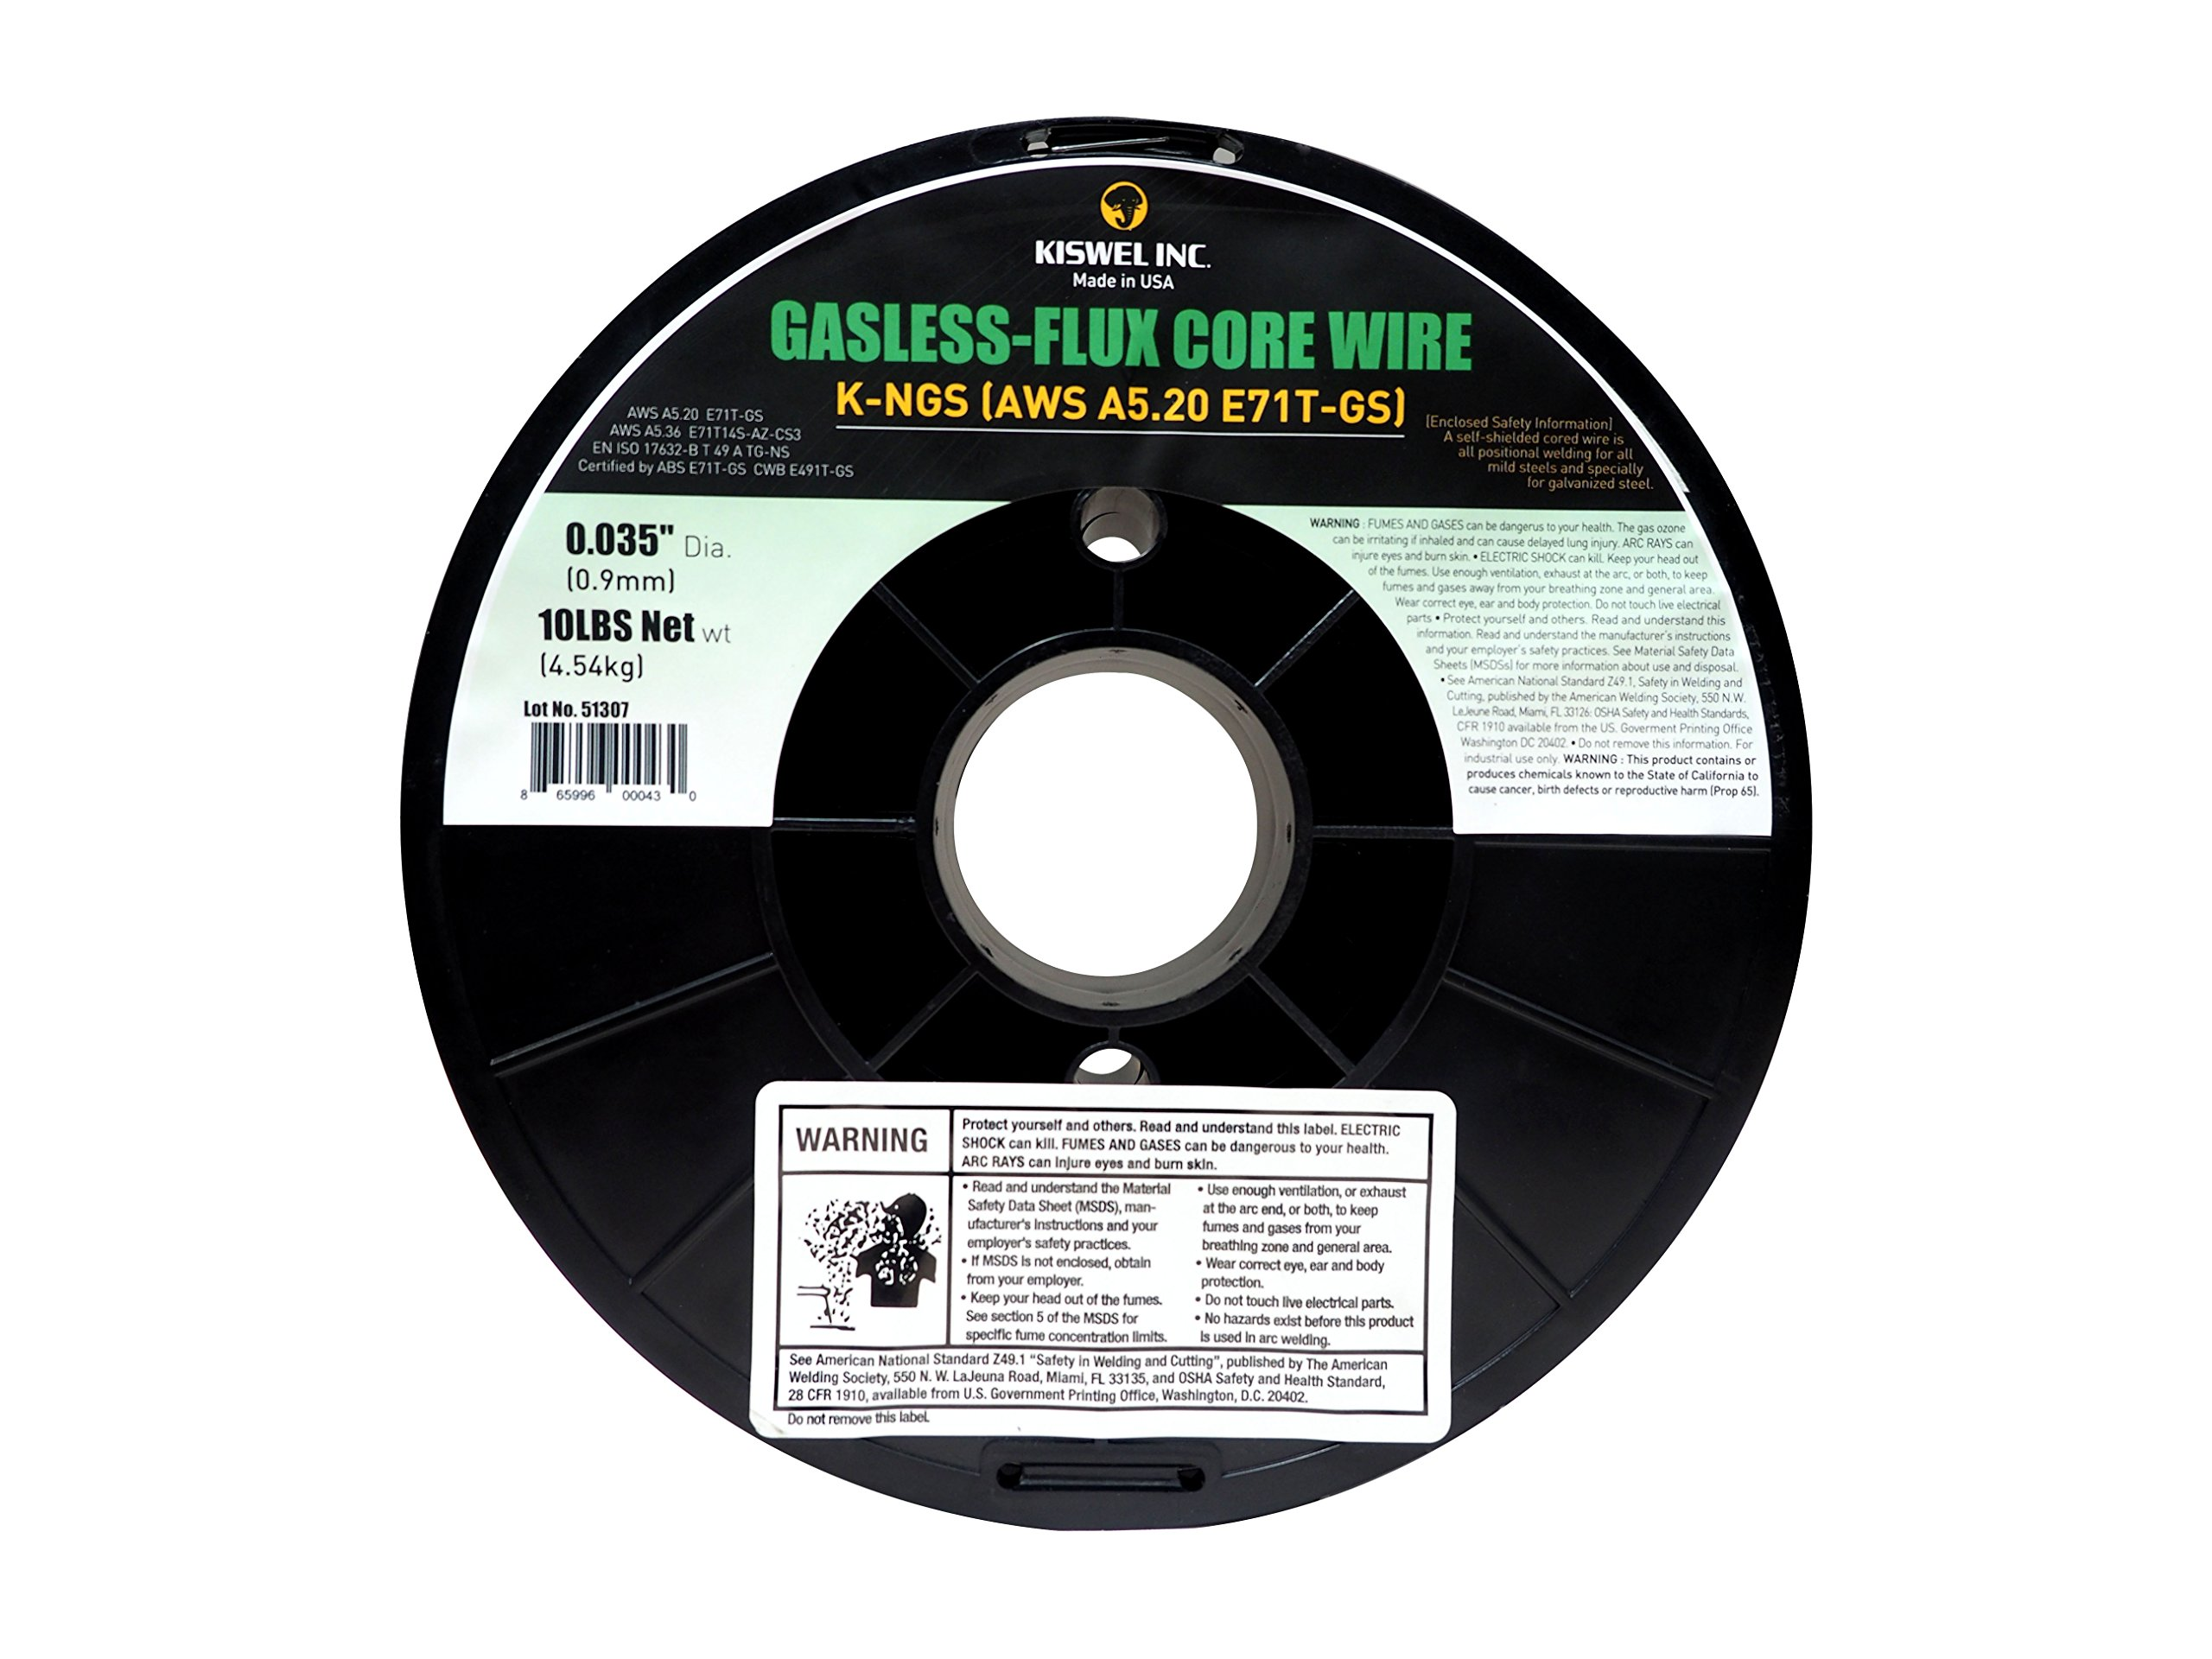 Kiswel USA K-NGS E-71TGS 0.035in. Dia 10lb. Gasless-Flux Core Wire Welding wire Made in USA by Kiswel